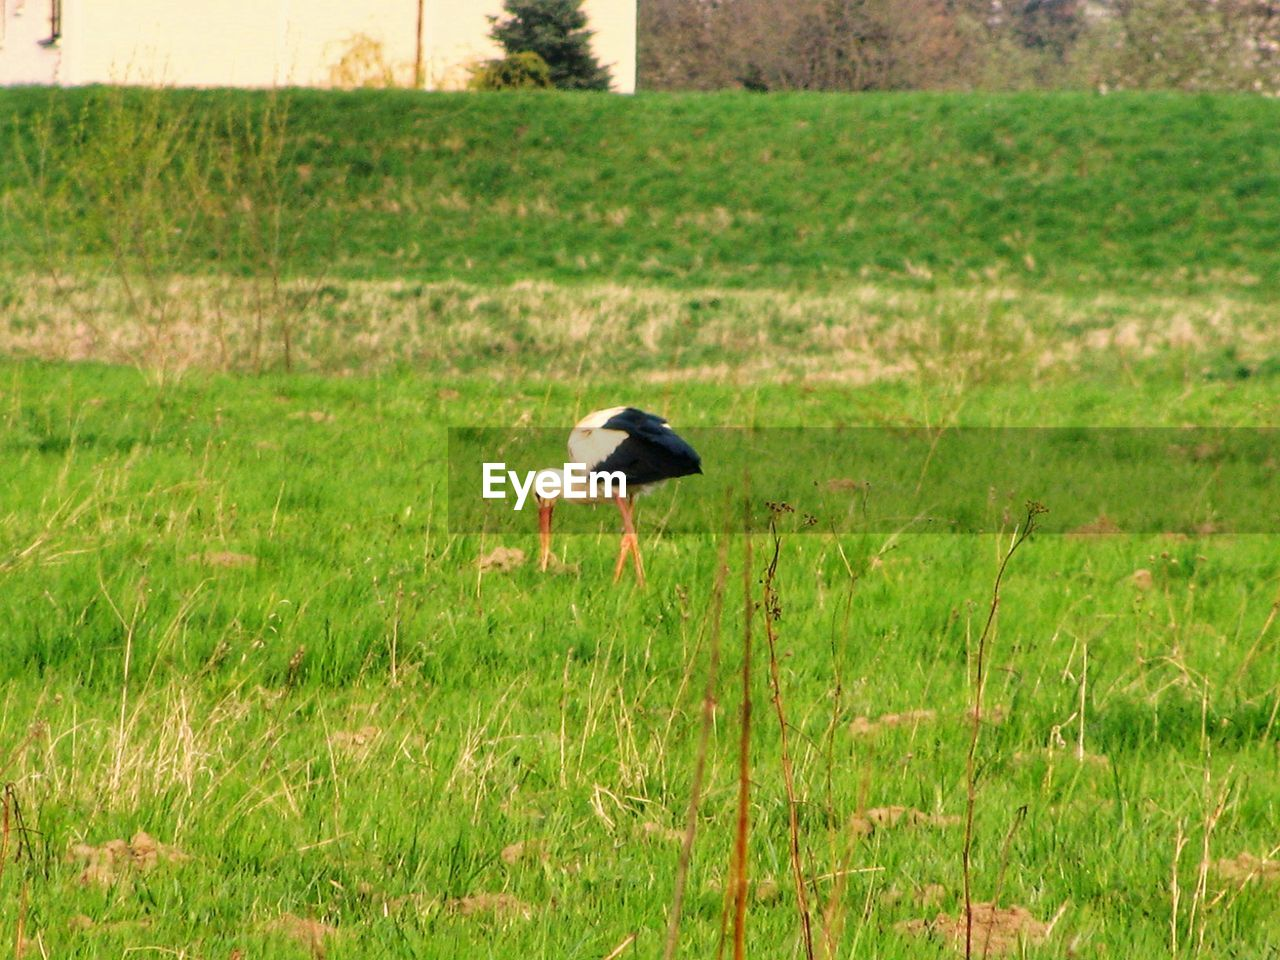 one animal, animal, bird, animal themes, vertebrate, animal wildlife, animals in the wild, grass, plant, field, land, green color, day, no people, nature, outdoors, side view, motion, growth, flying